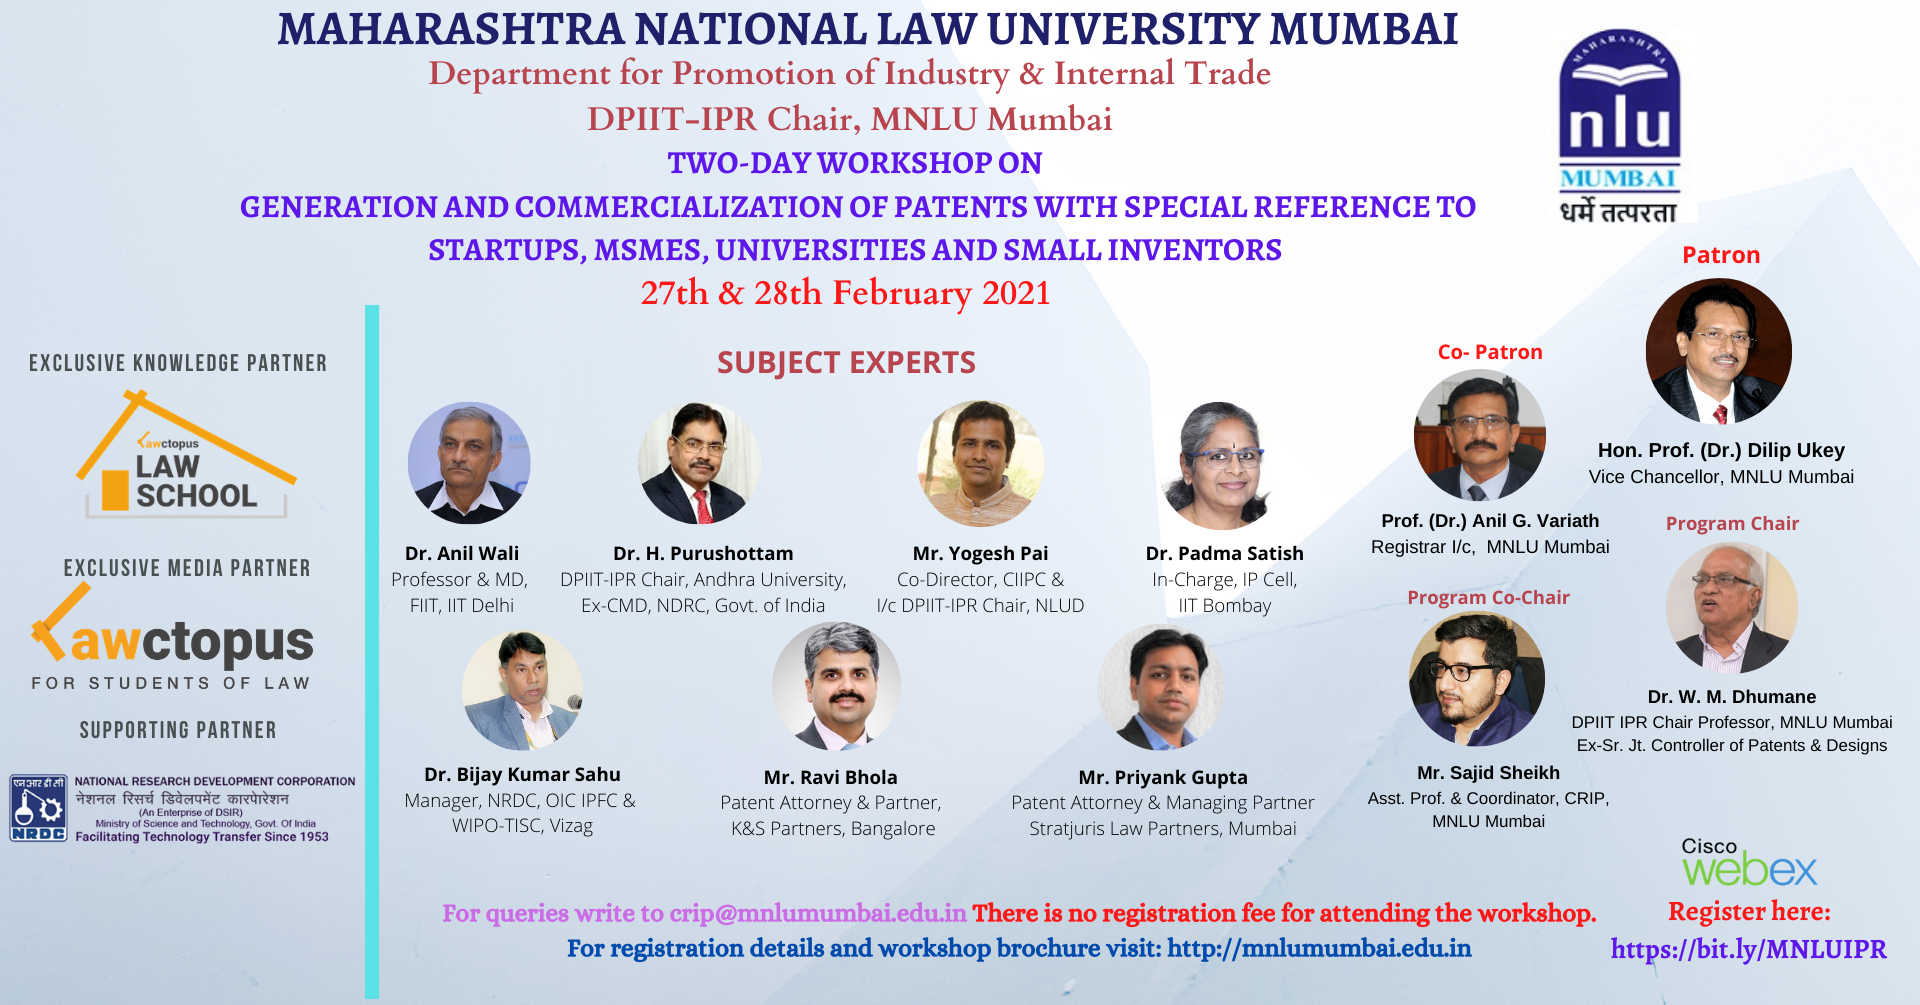 MNLU Mumbai's Workshop on Generation and Commercialization of Patents